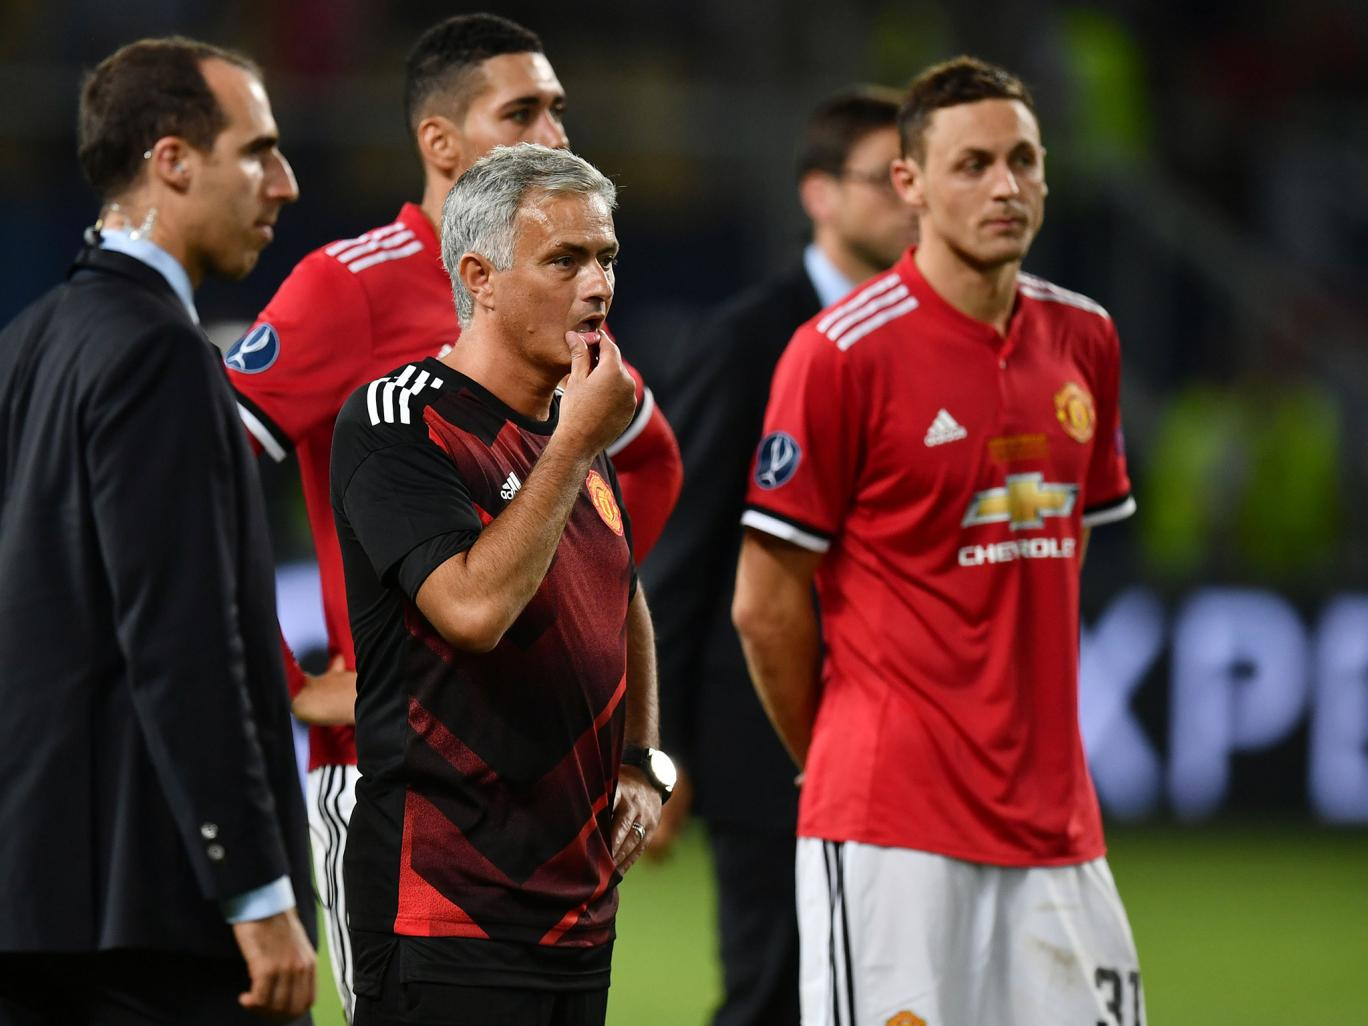 Manchester United shortcomings exposed in Super Cup defeat against Real Madrid